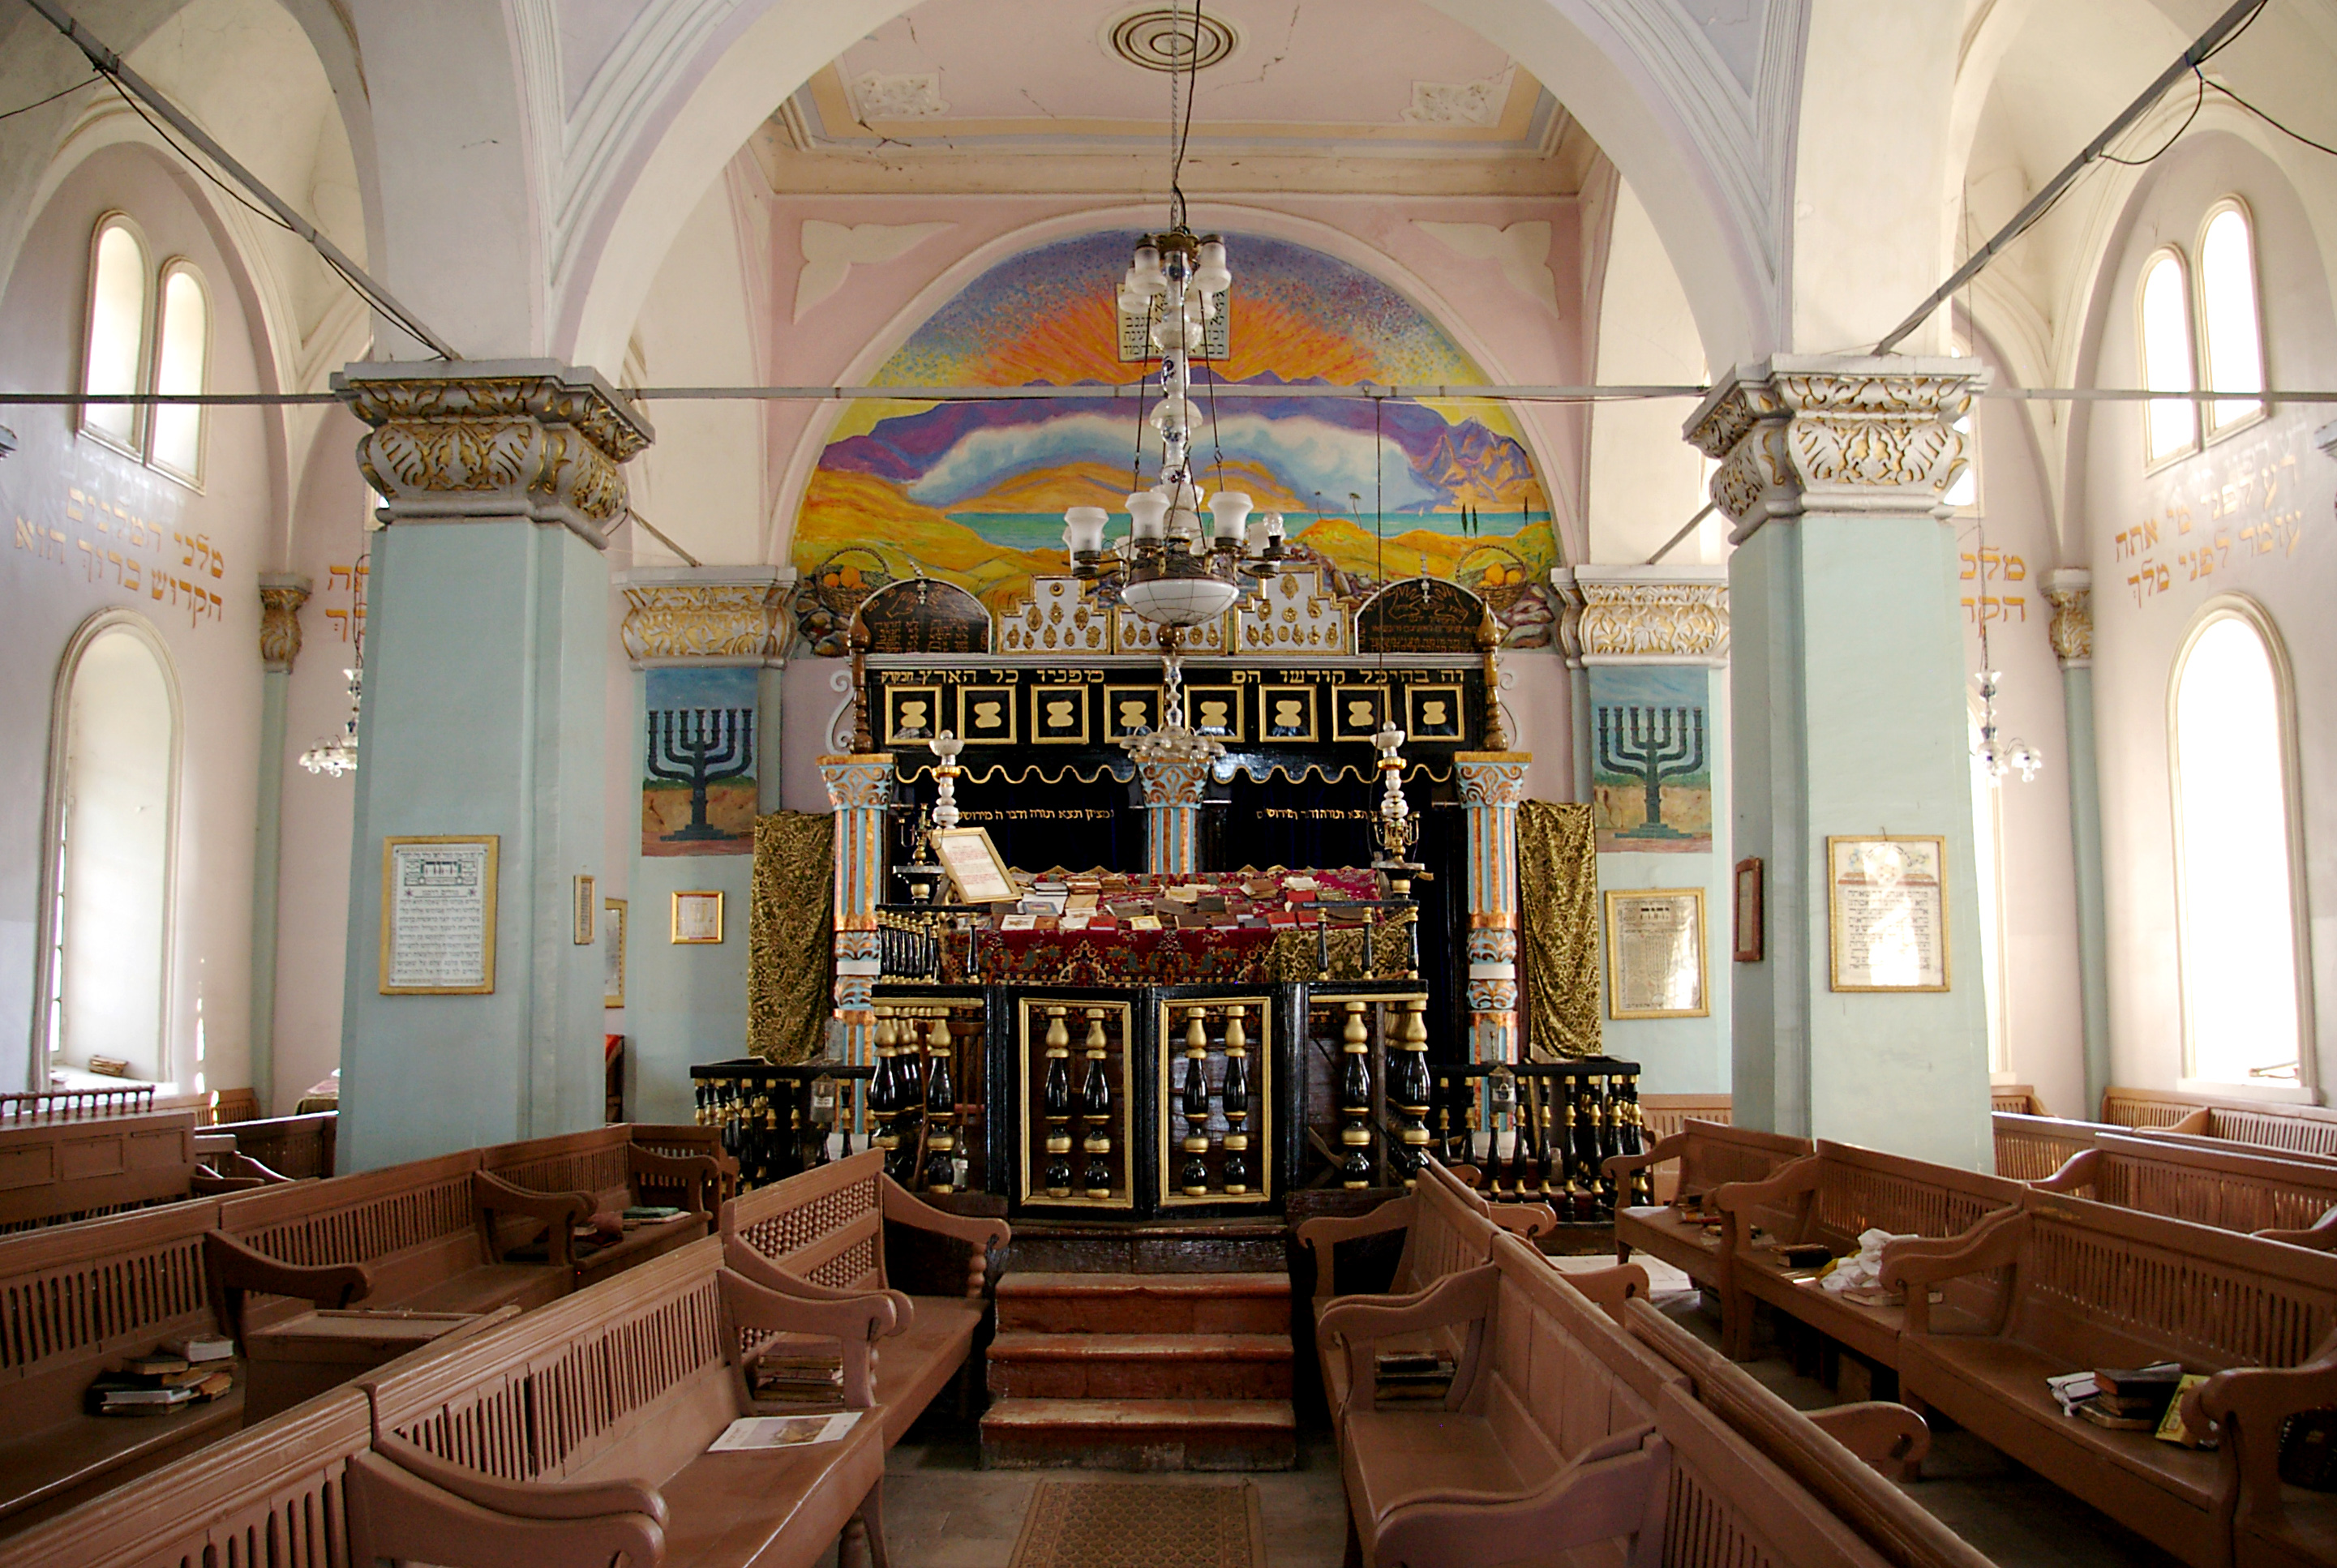 File:Oni Synagogue.jpg - Wikipedia, the free encyclopedia